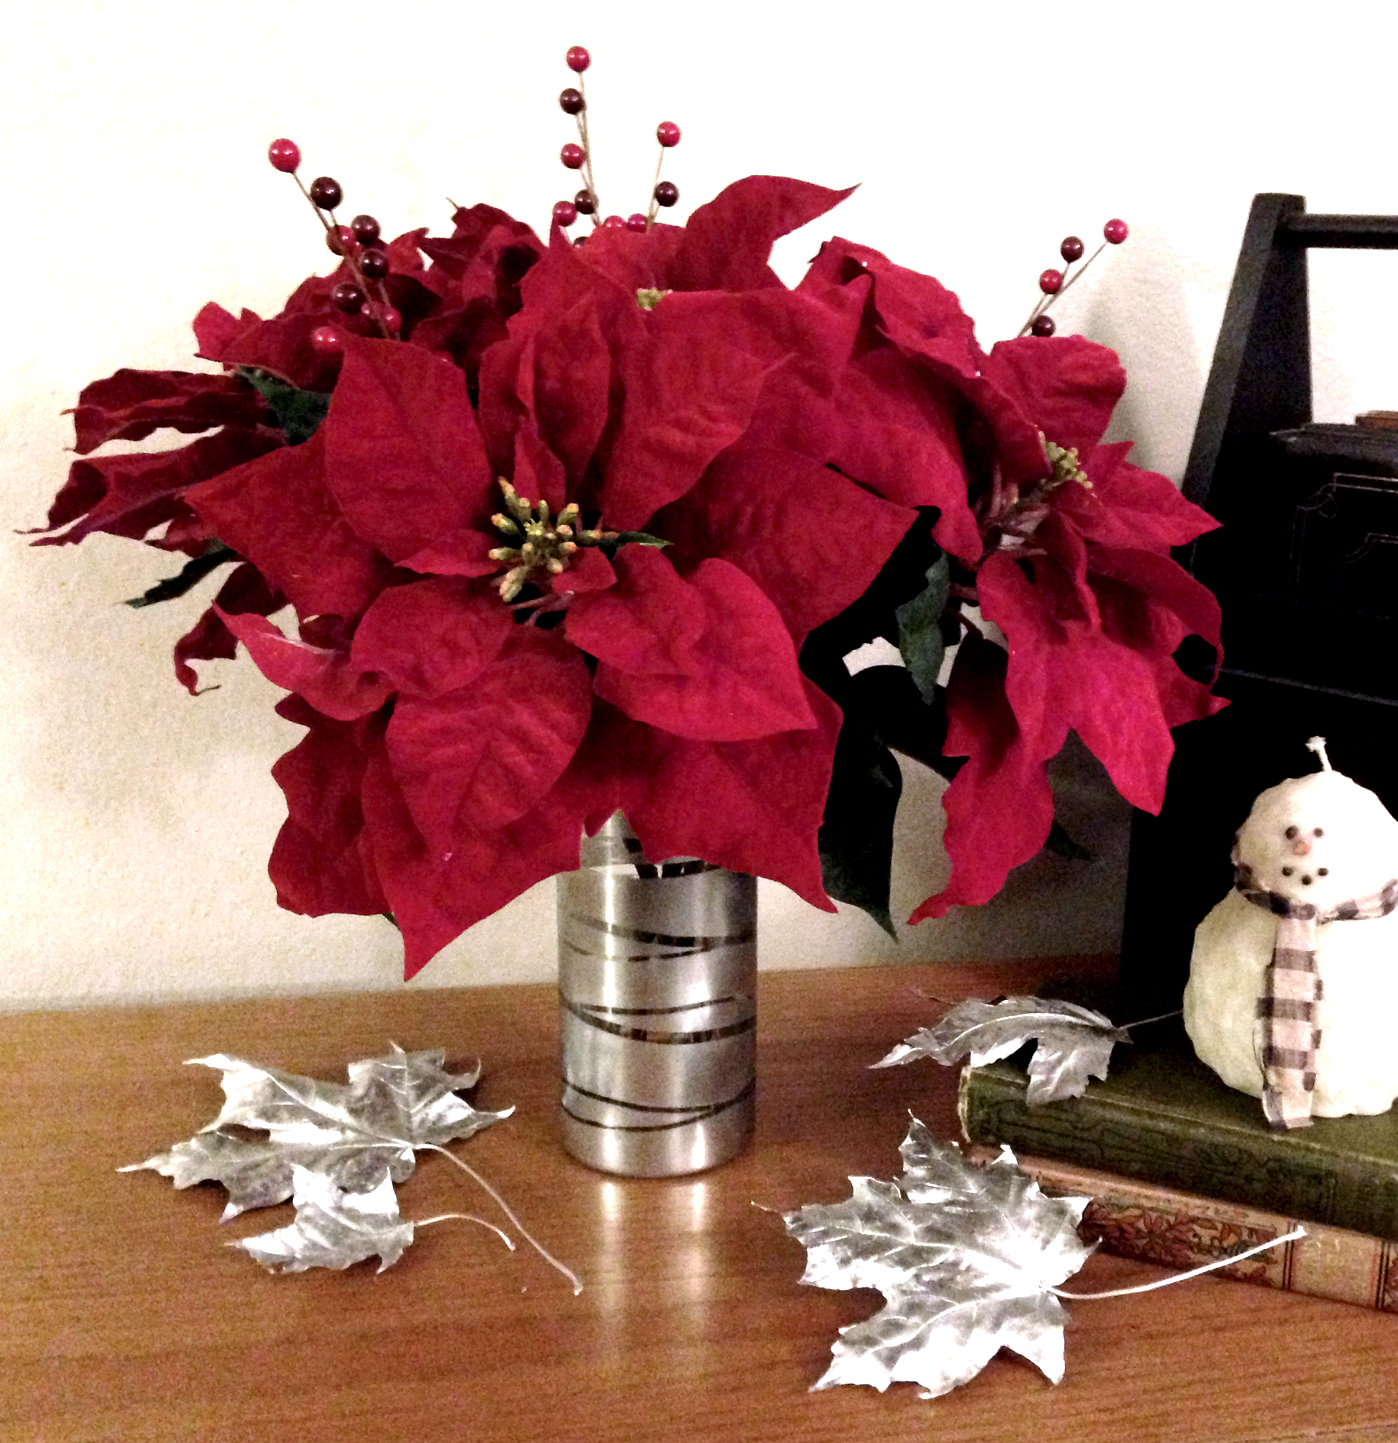 DIY poinsettia flower arrangement | Love My DIY Home